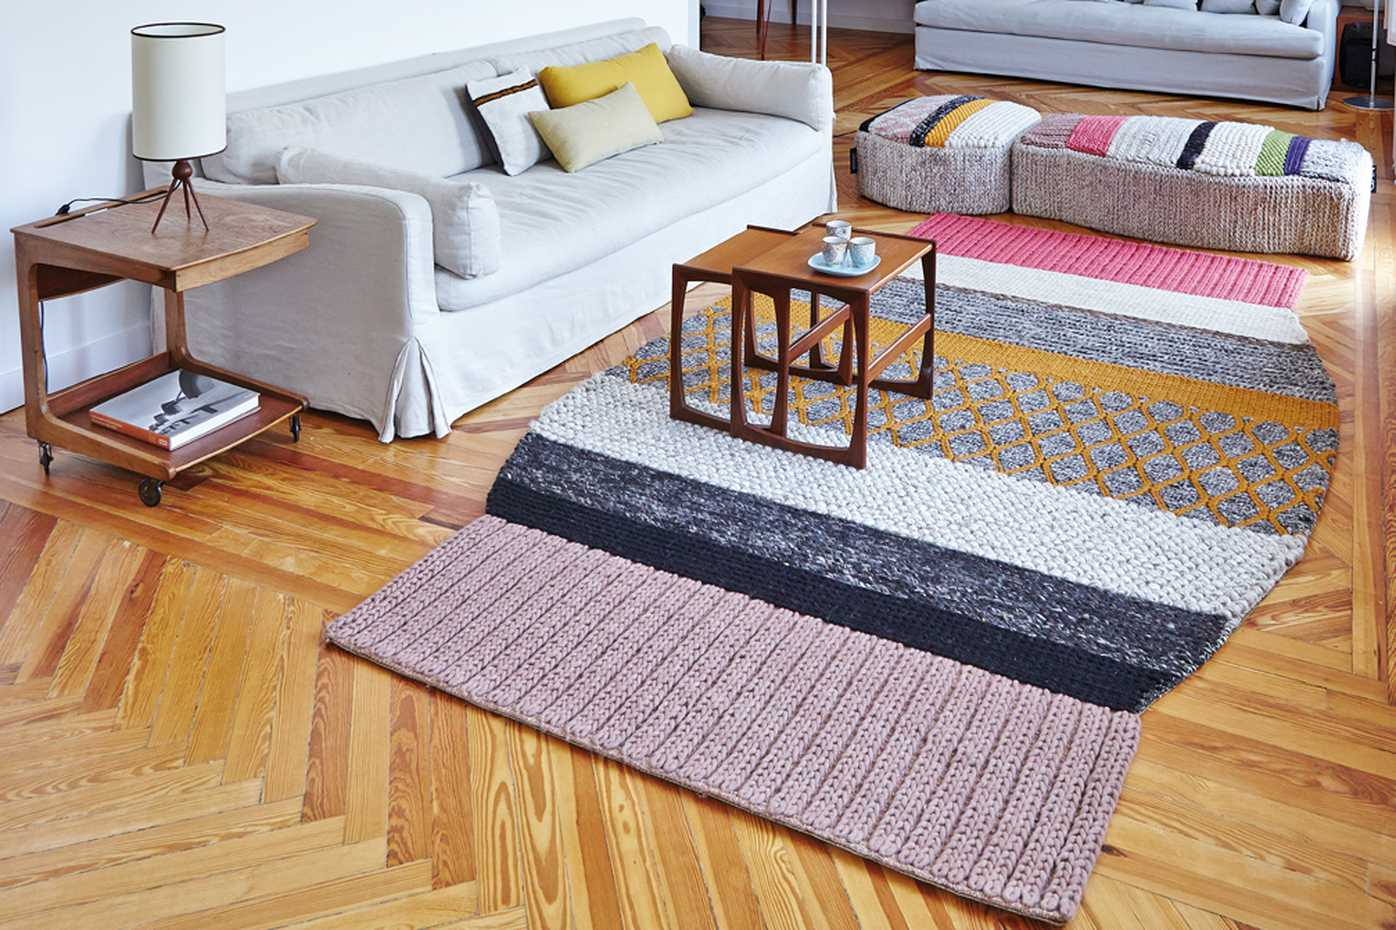 Mangas Original Rugs by Gan Rugs product image 11